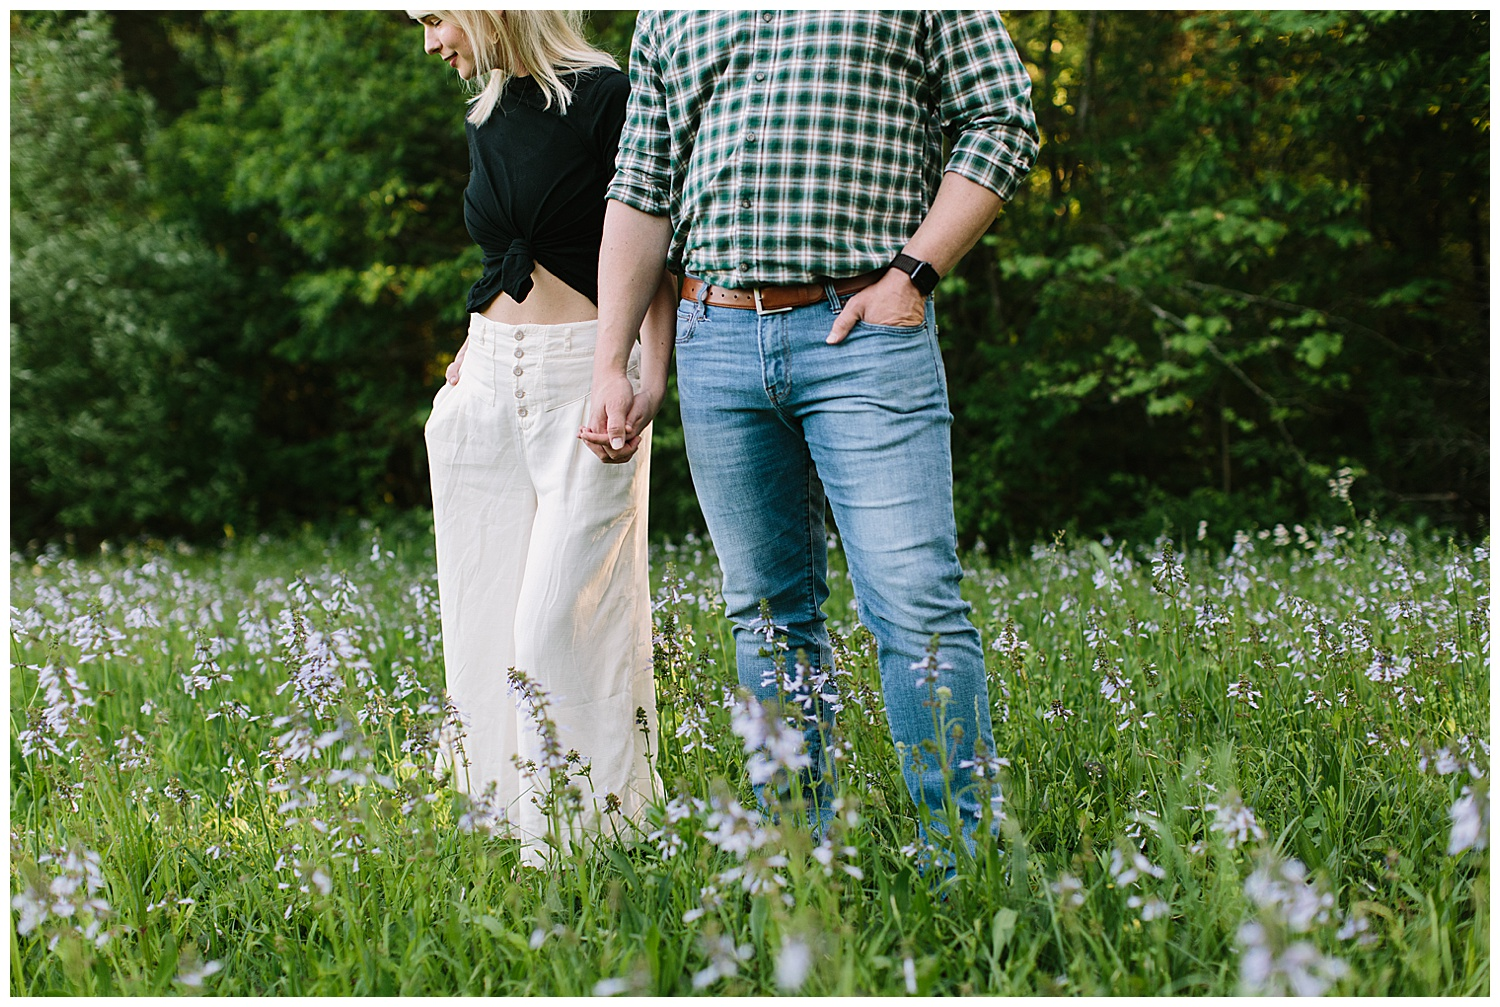 trent.and.kendra.photography.bernheim.forest.photos-31.jpg